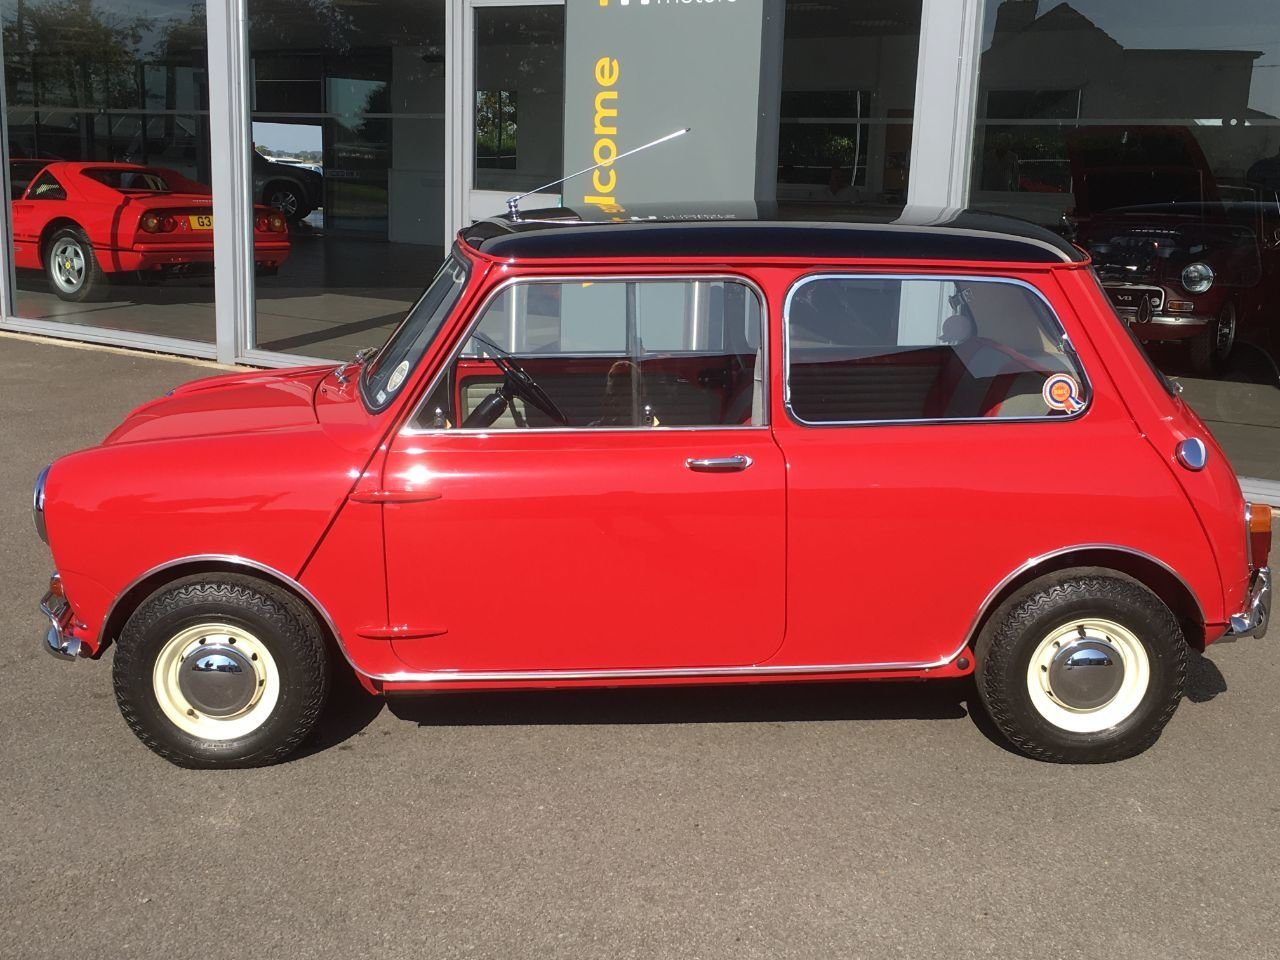 1966 AUSTIN MINI COOPER S For Sale (picture 2 of 5)